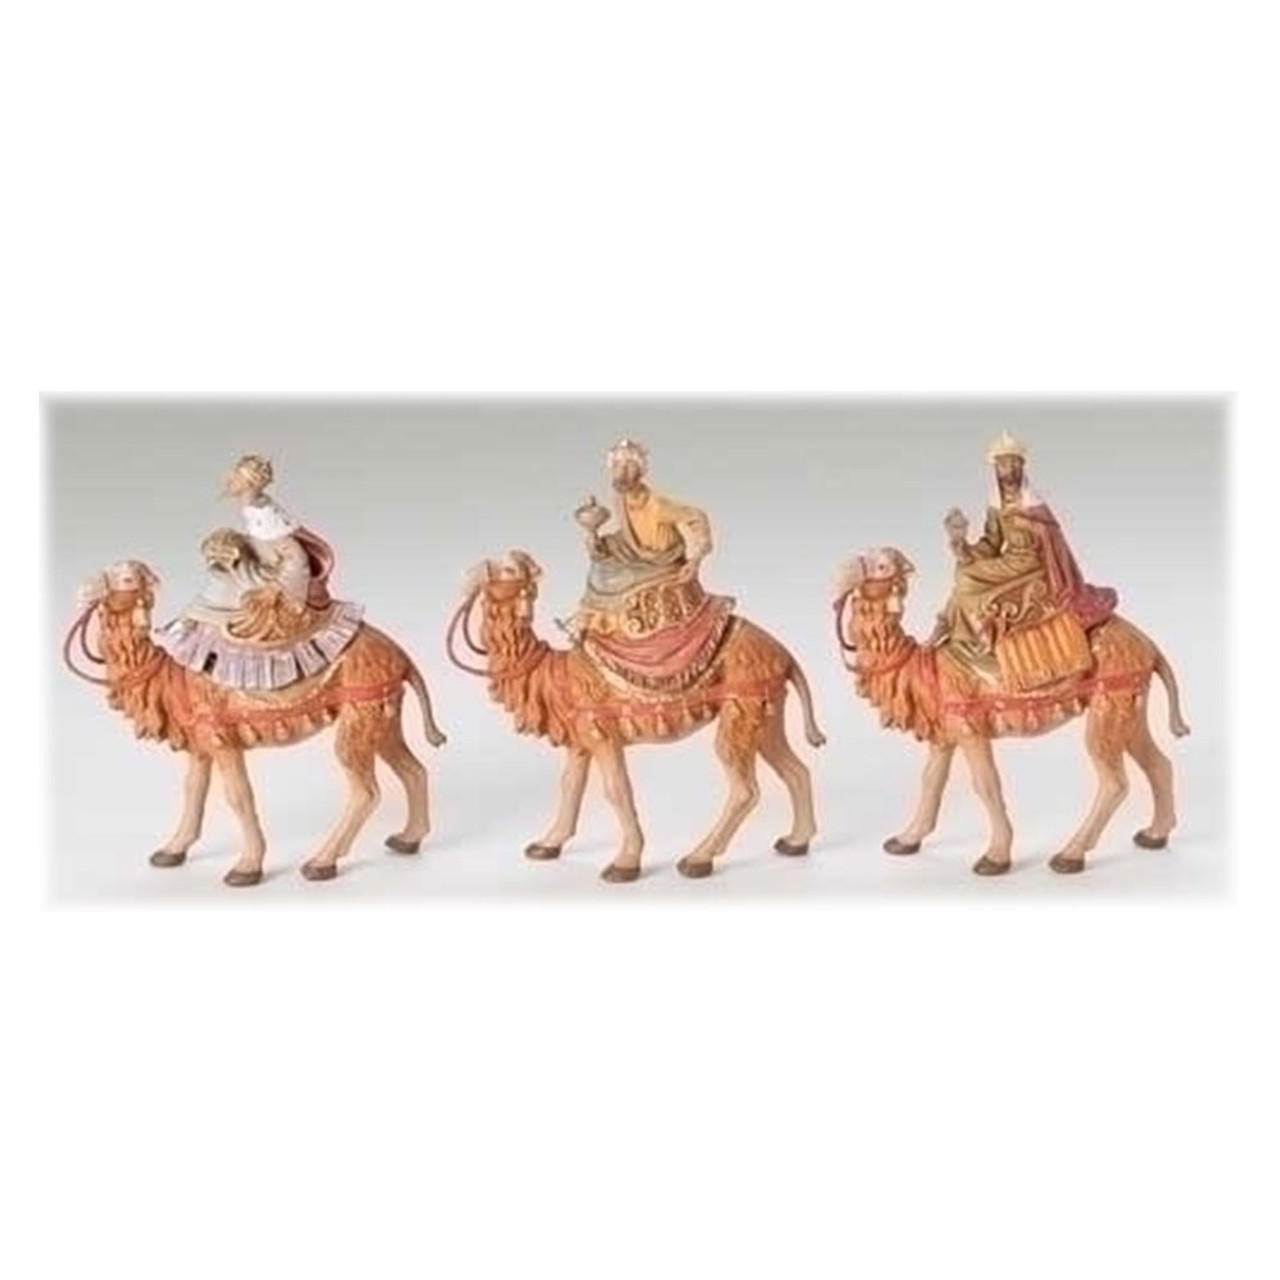 Three Kings on Camels 5 Inch Nativity Figurines